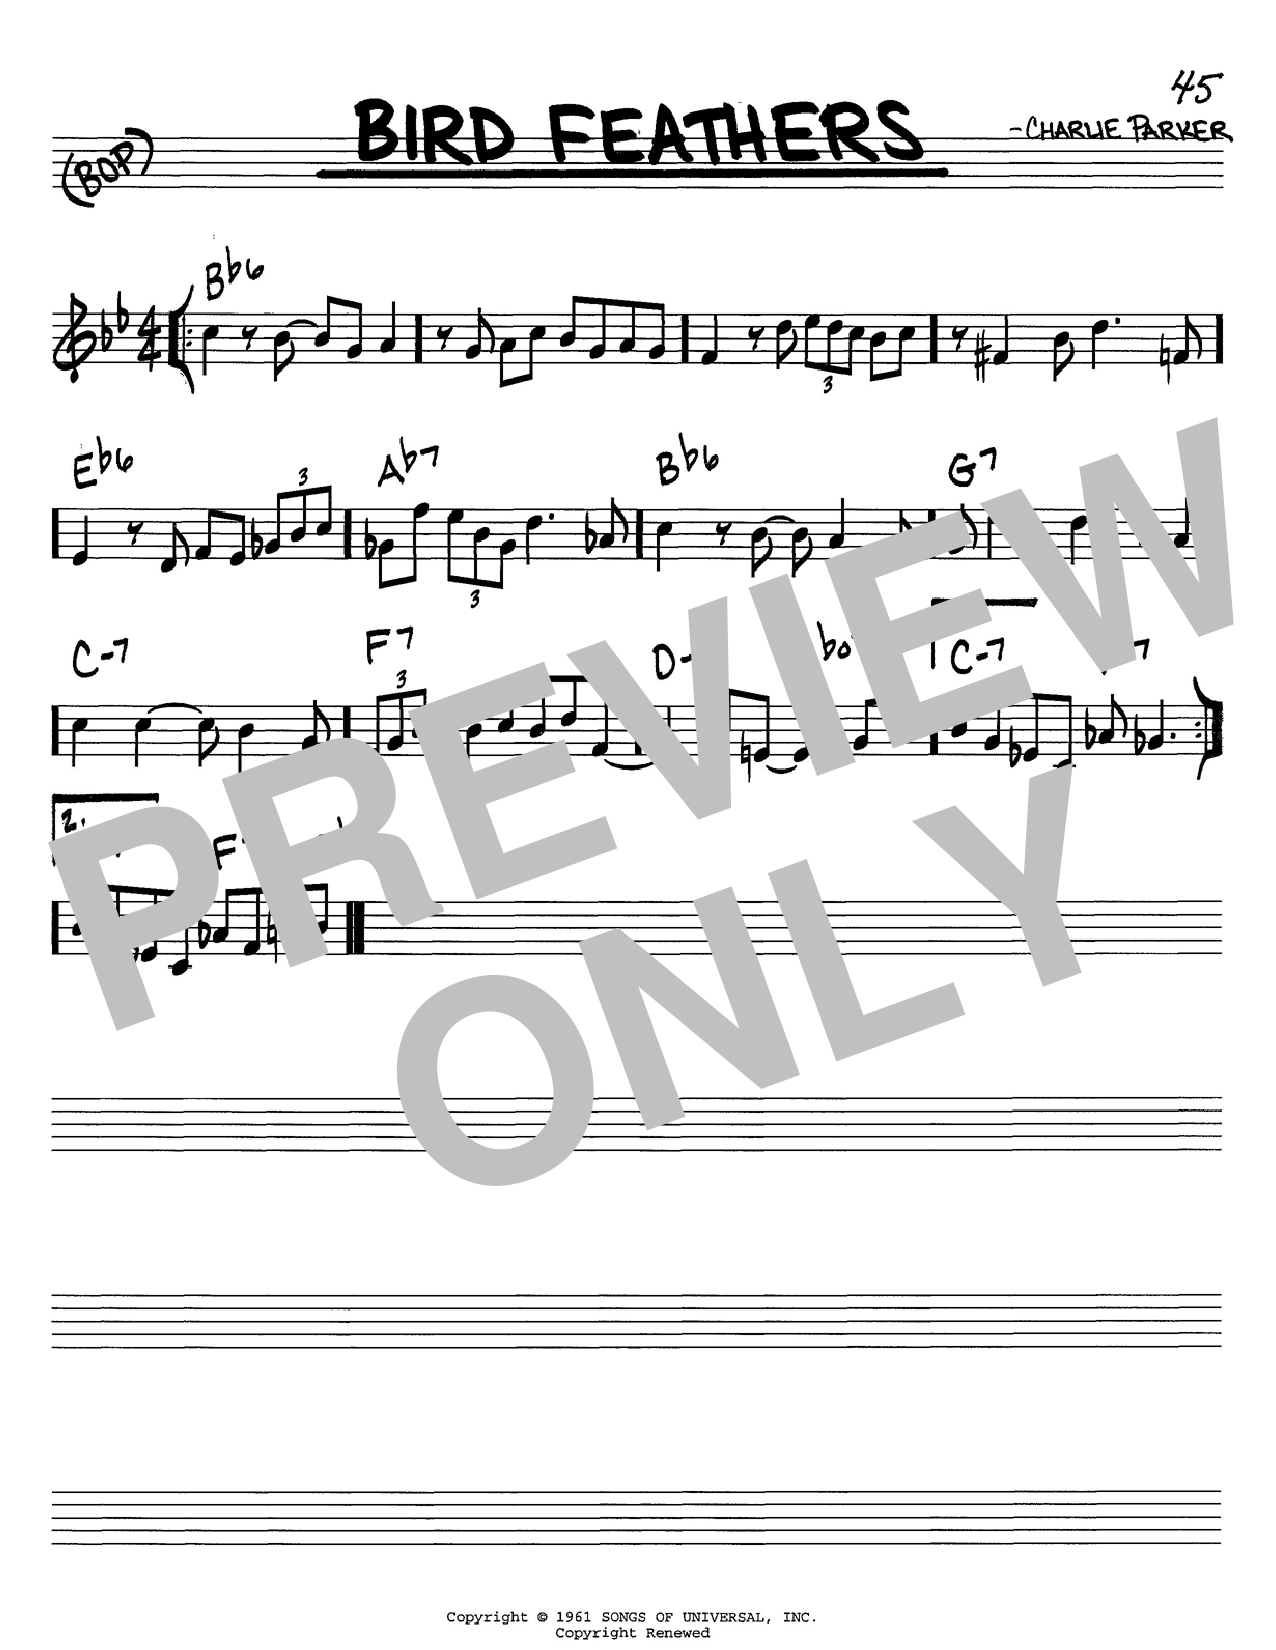 Charlie Parker Bird Feathers sheet music notes and chords. Download Printable PDF.